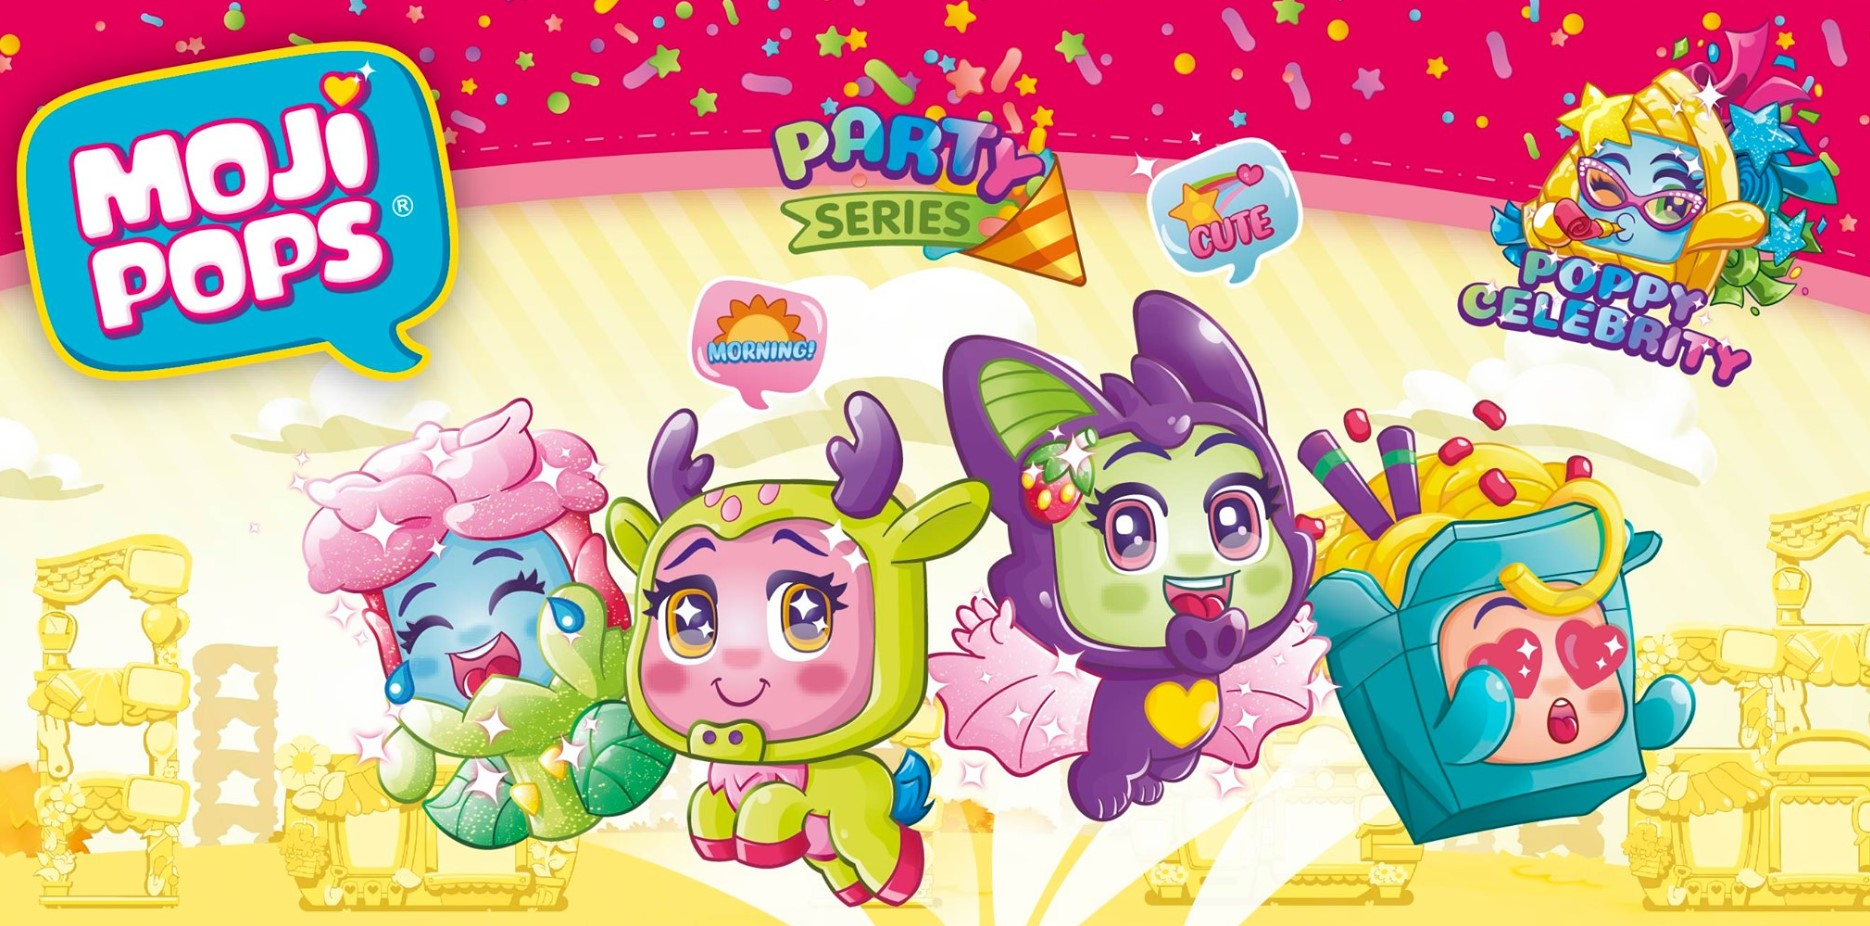 Mojipops Party Series 2